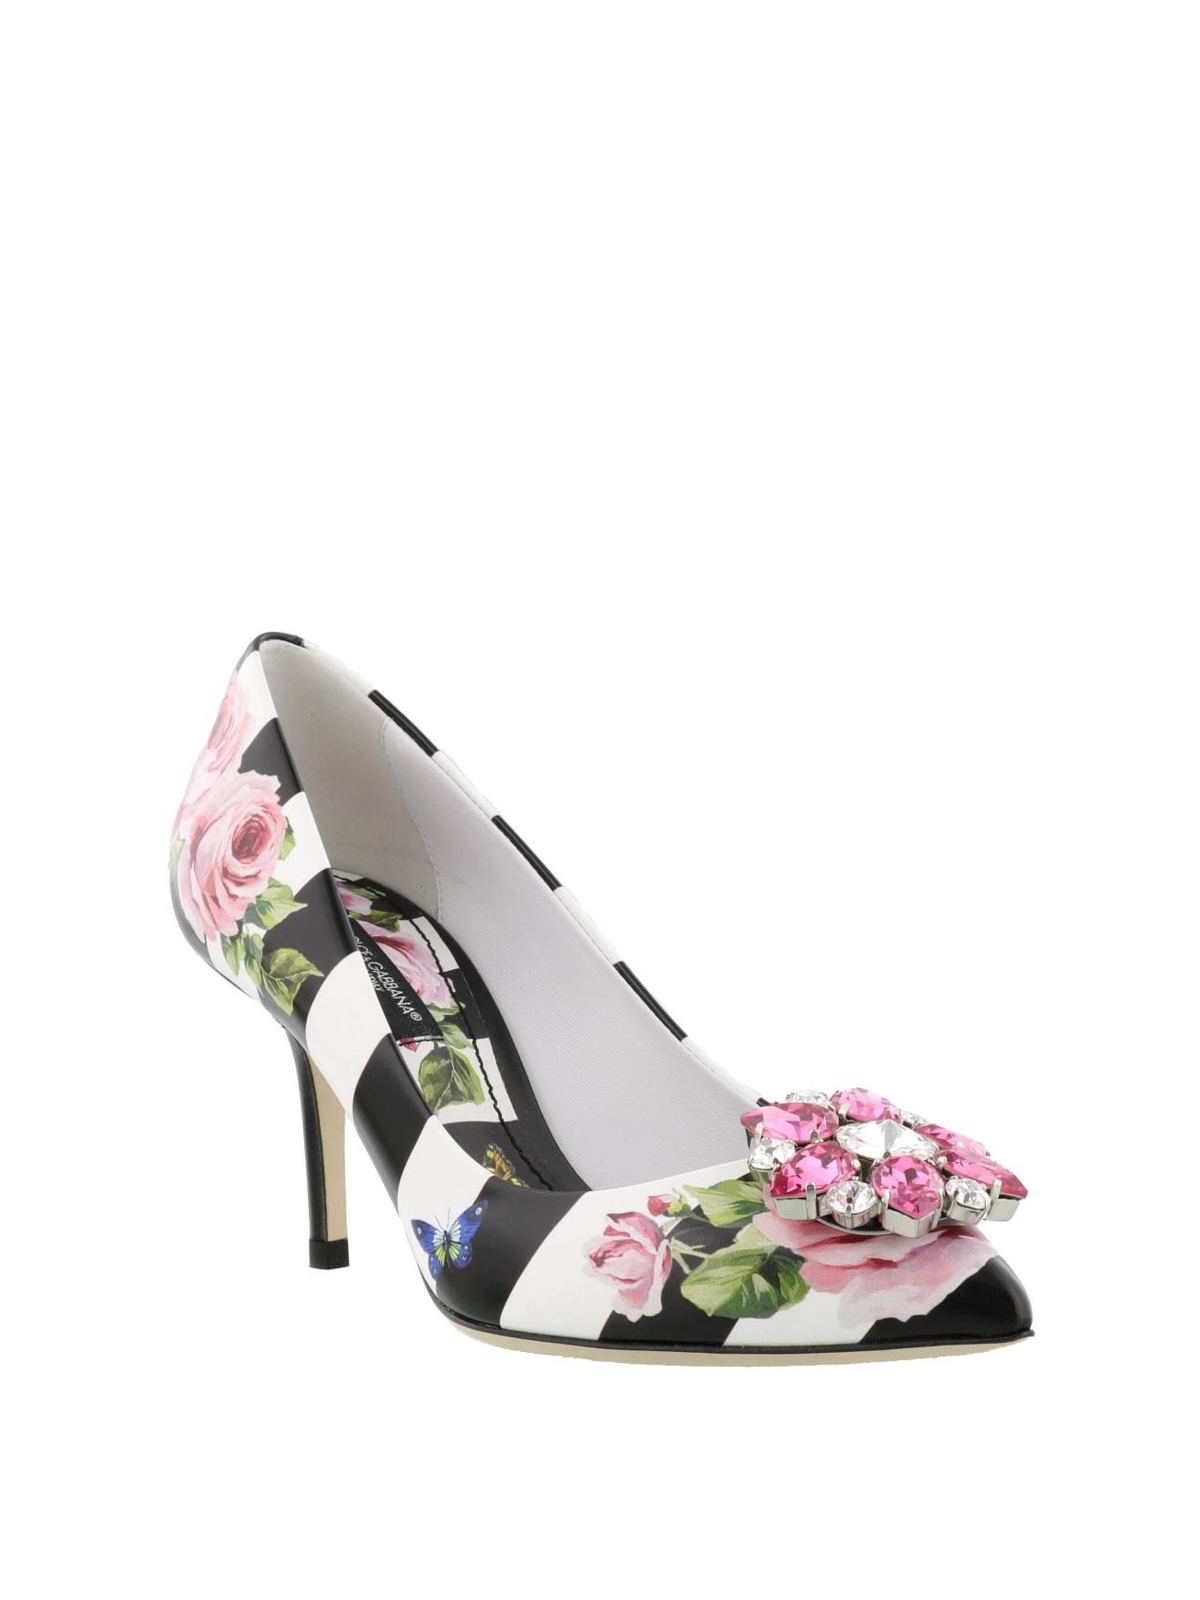 fb2e967ee242 DOLCE   GABBANA  court shoes online - Rose print striped leather pumps